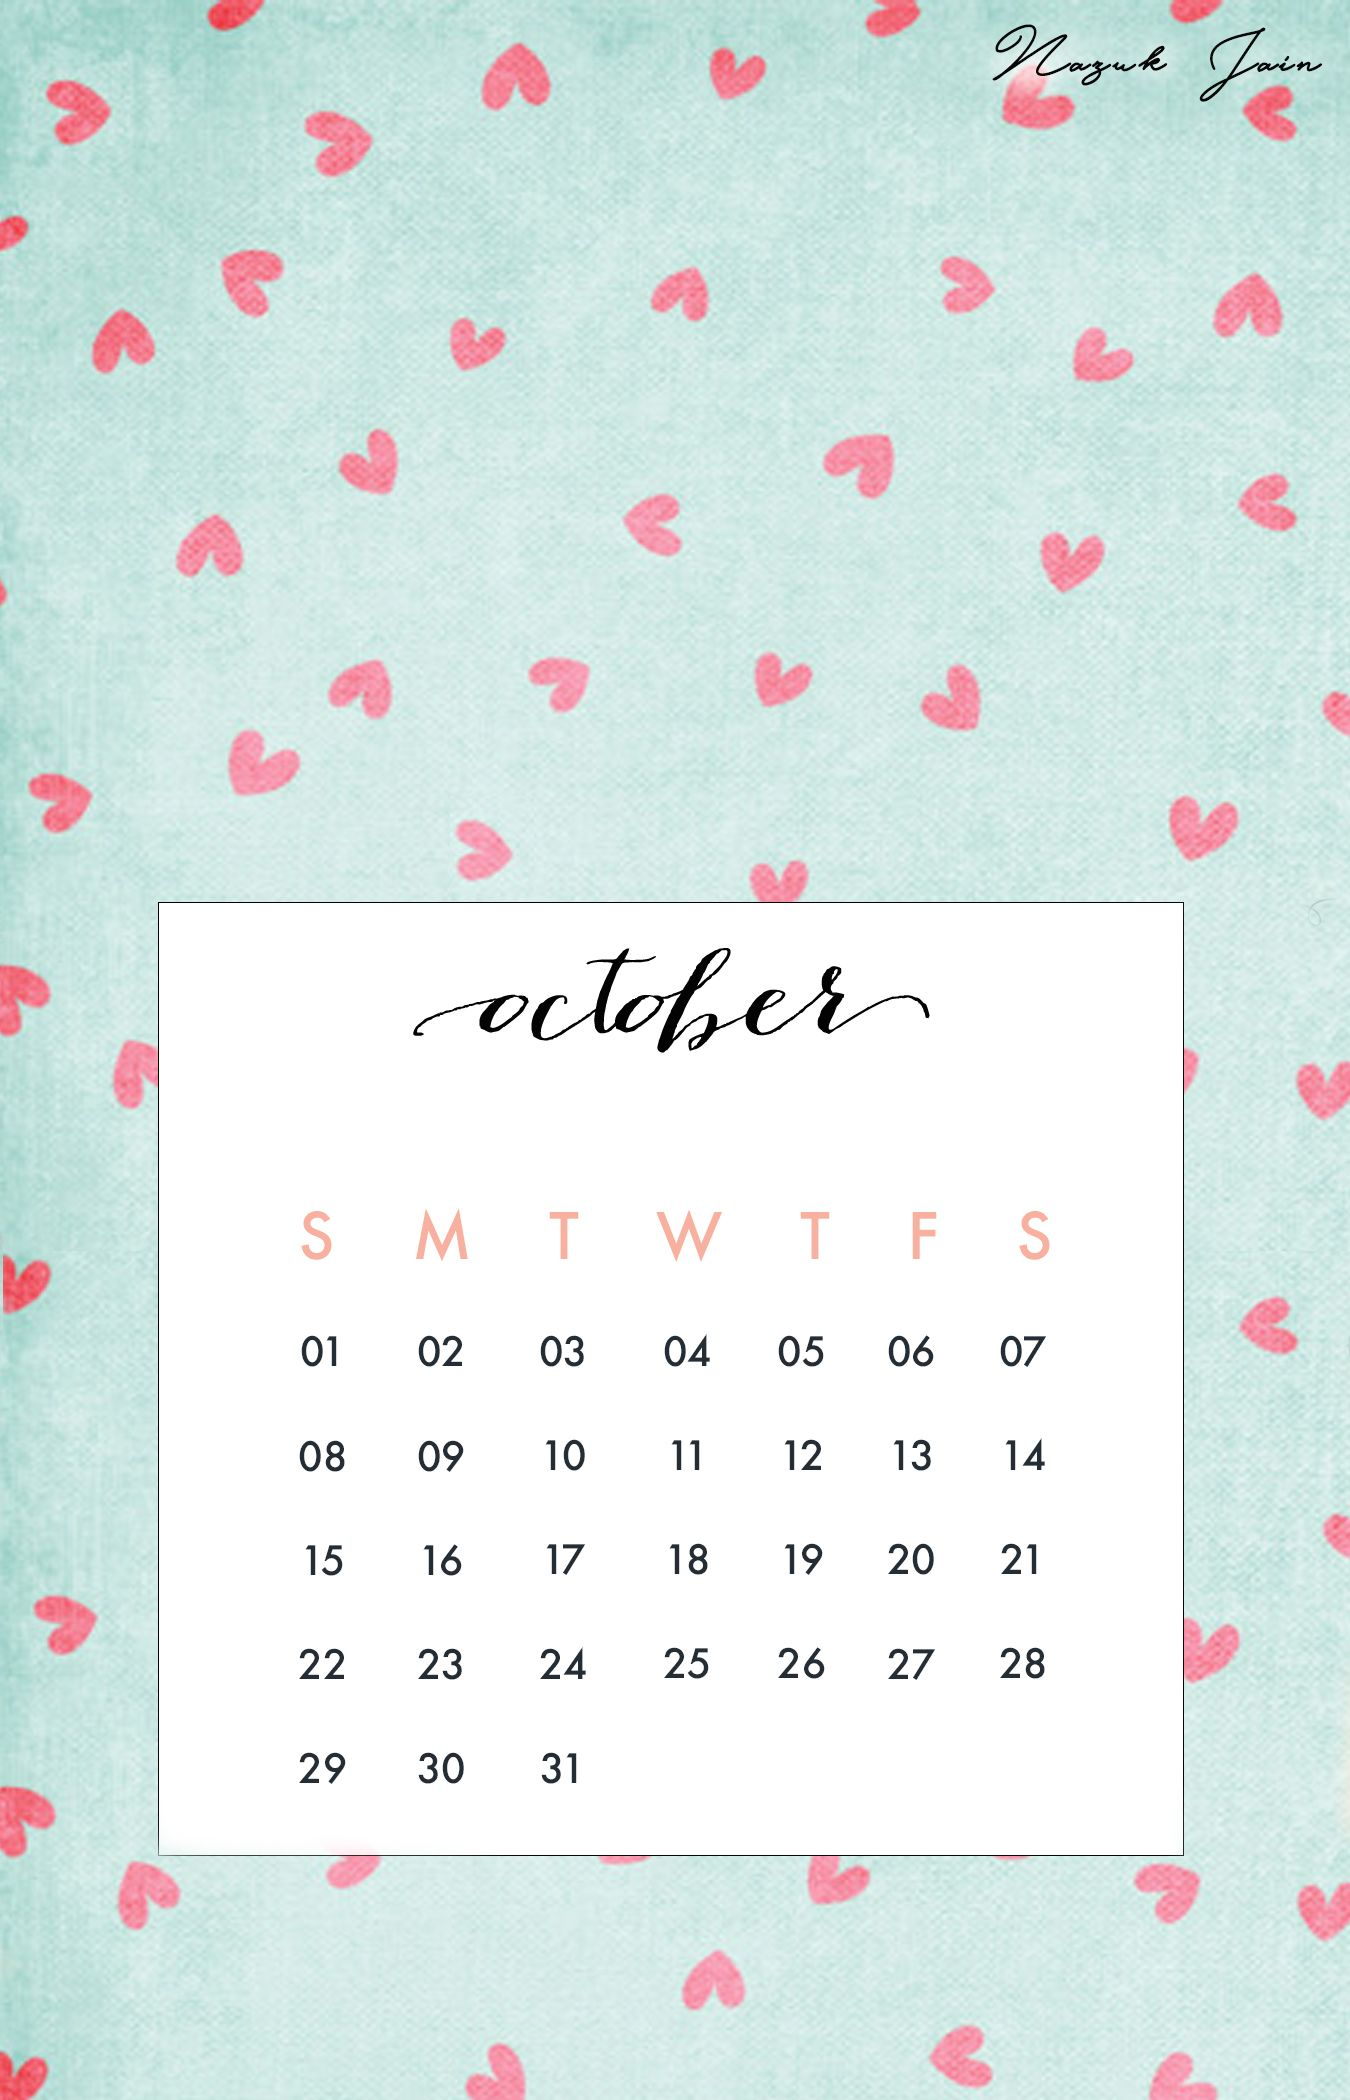 October   Free Calendar Printables 2017 By Nazuk Jain